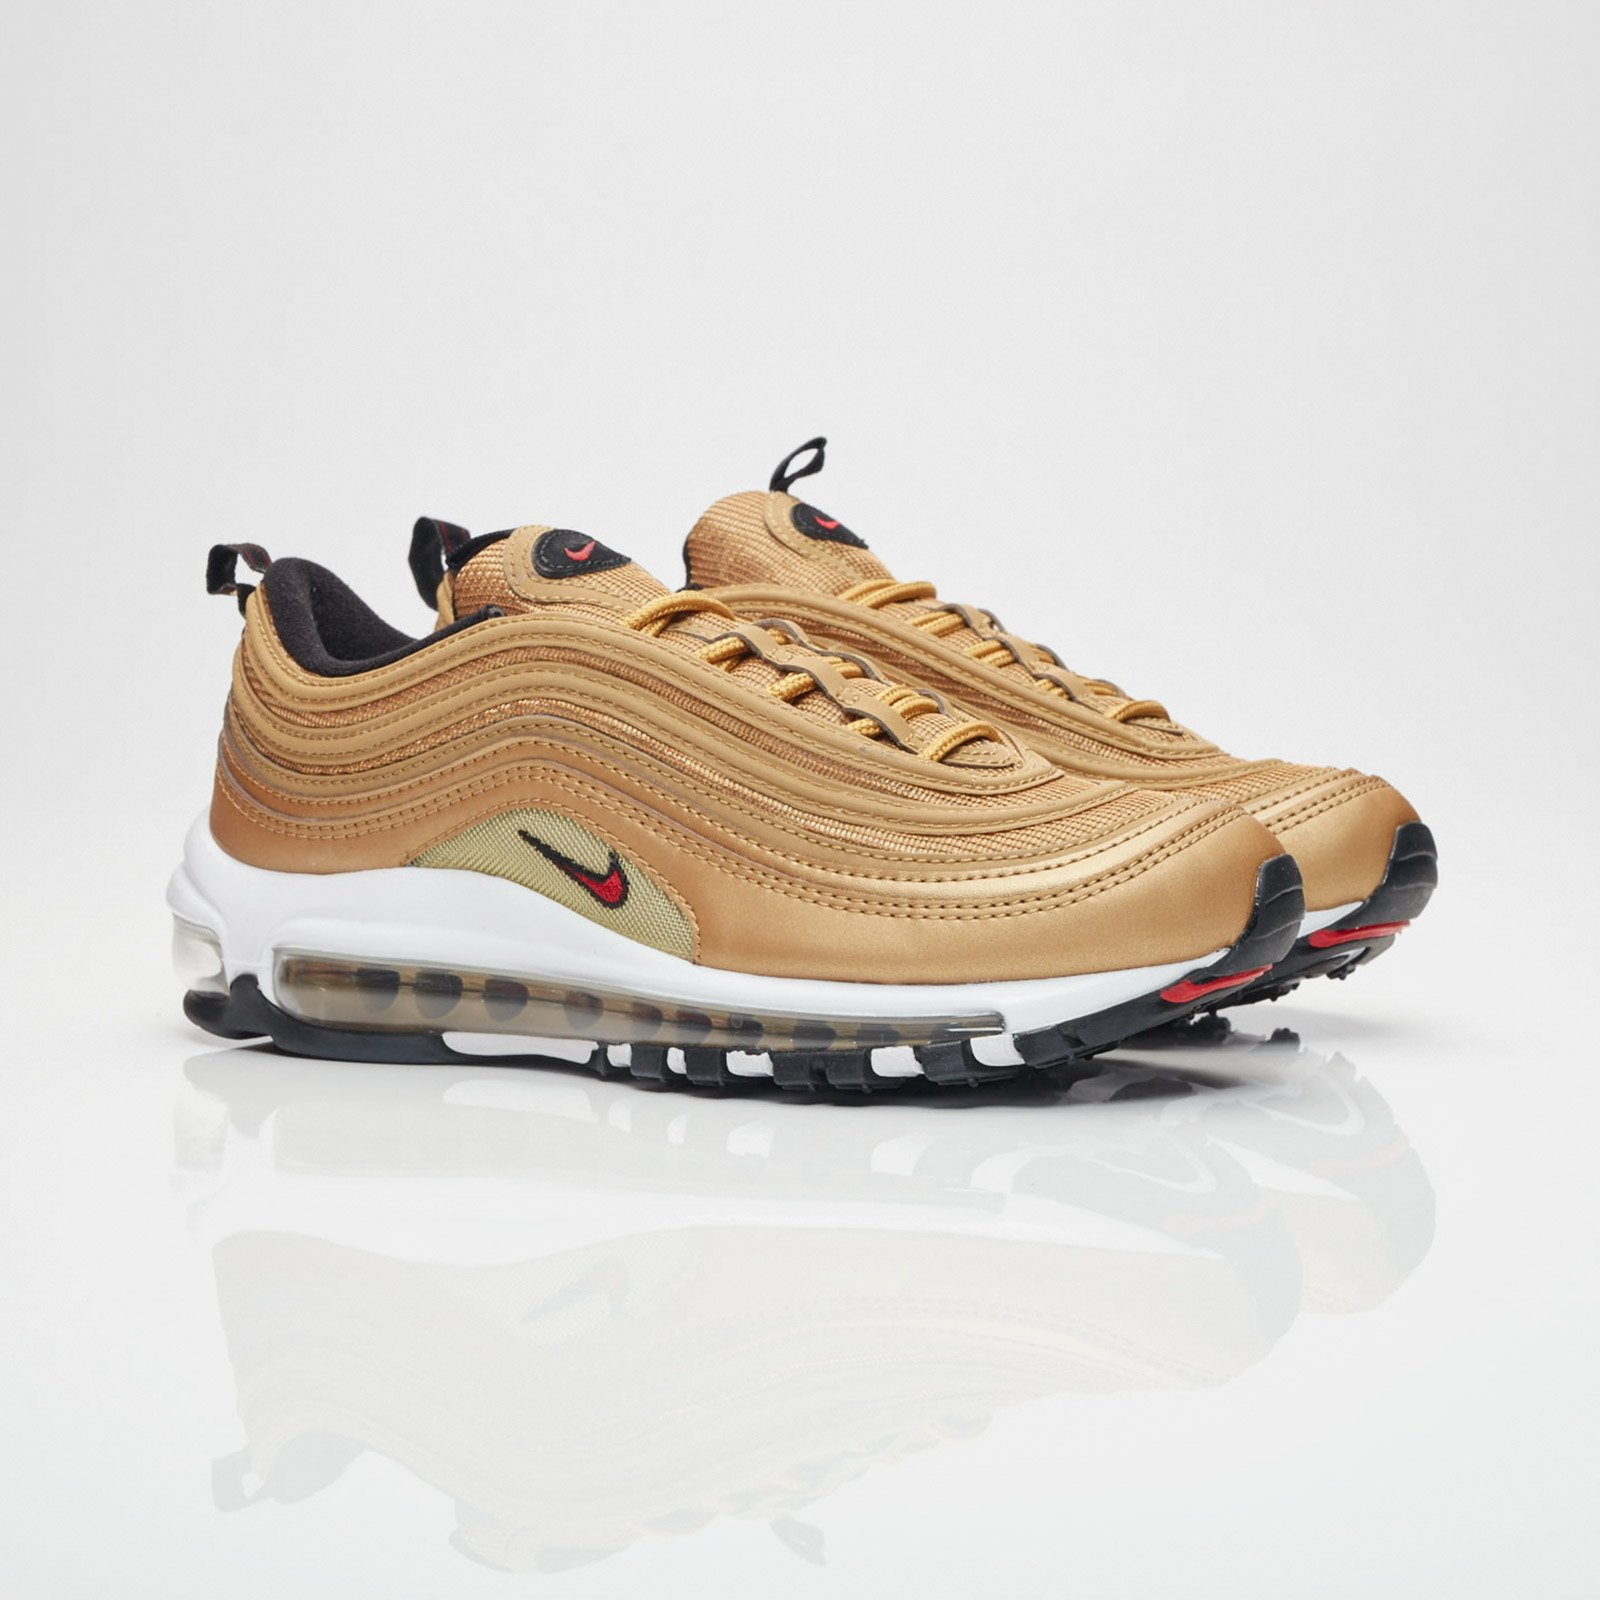 uk availability 3a4a7 4f24c Nike Air Max 97 OG QS - 884421-700 - Sneakersnstuff | sneakers ...